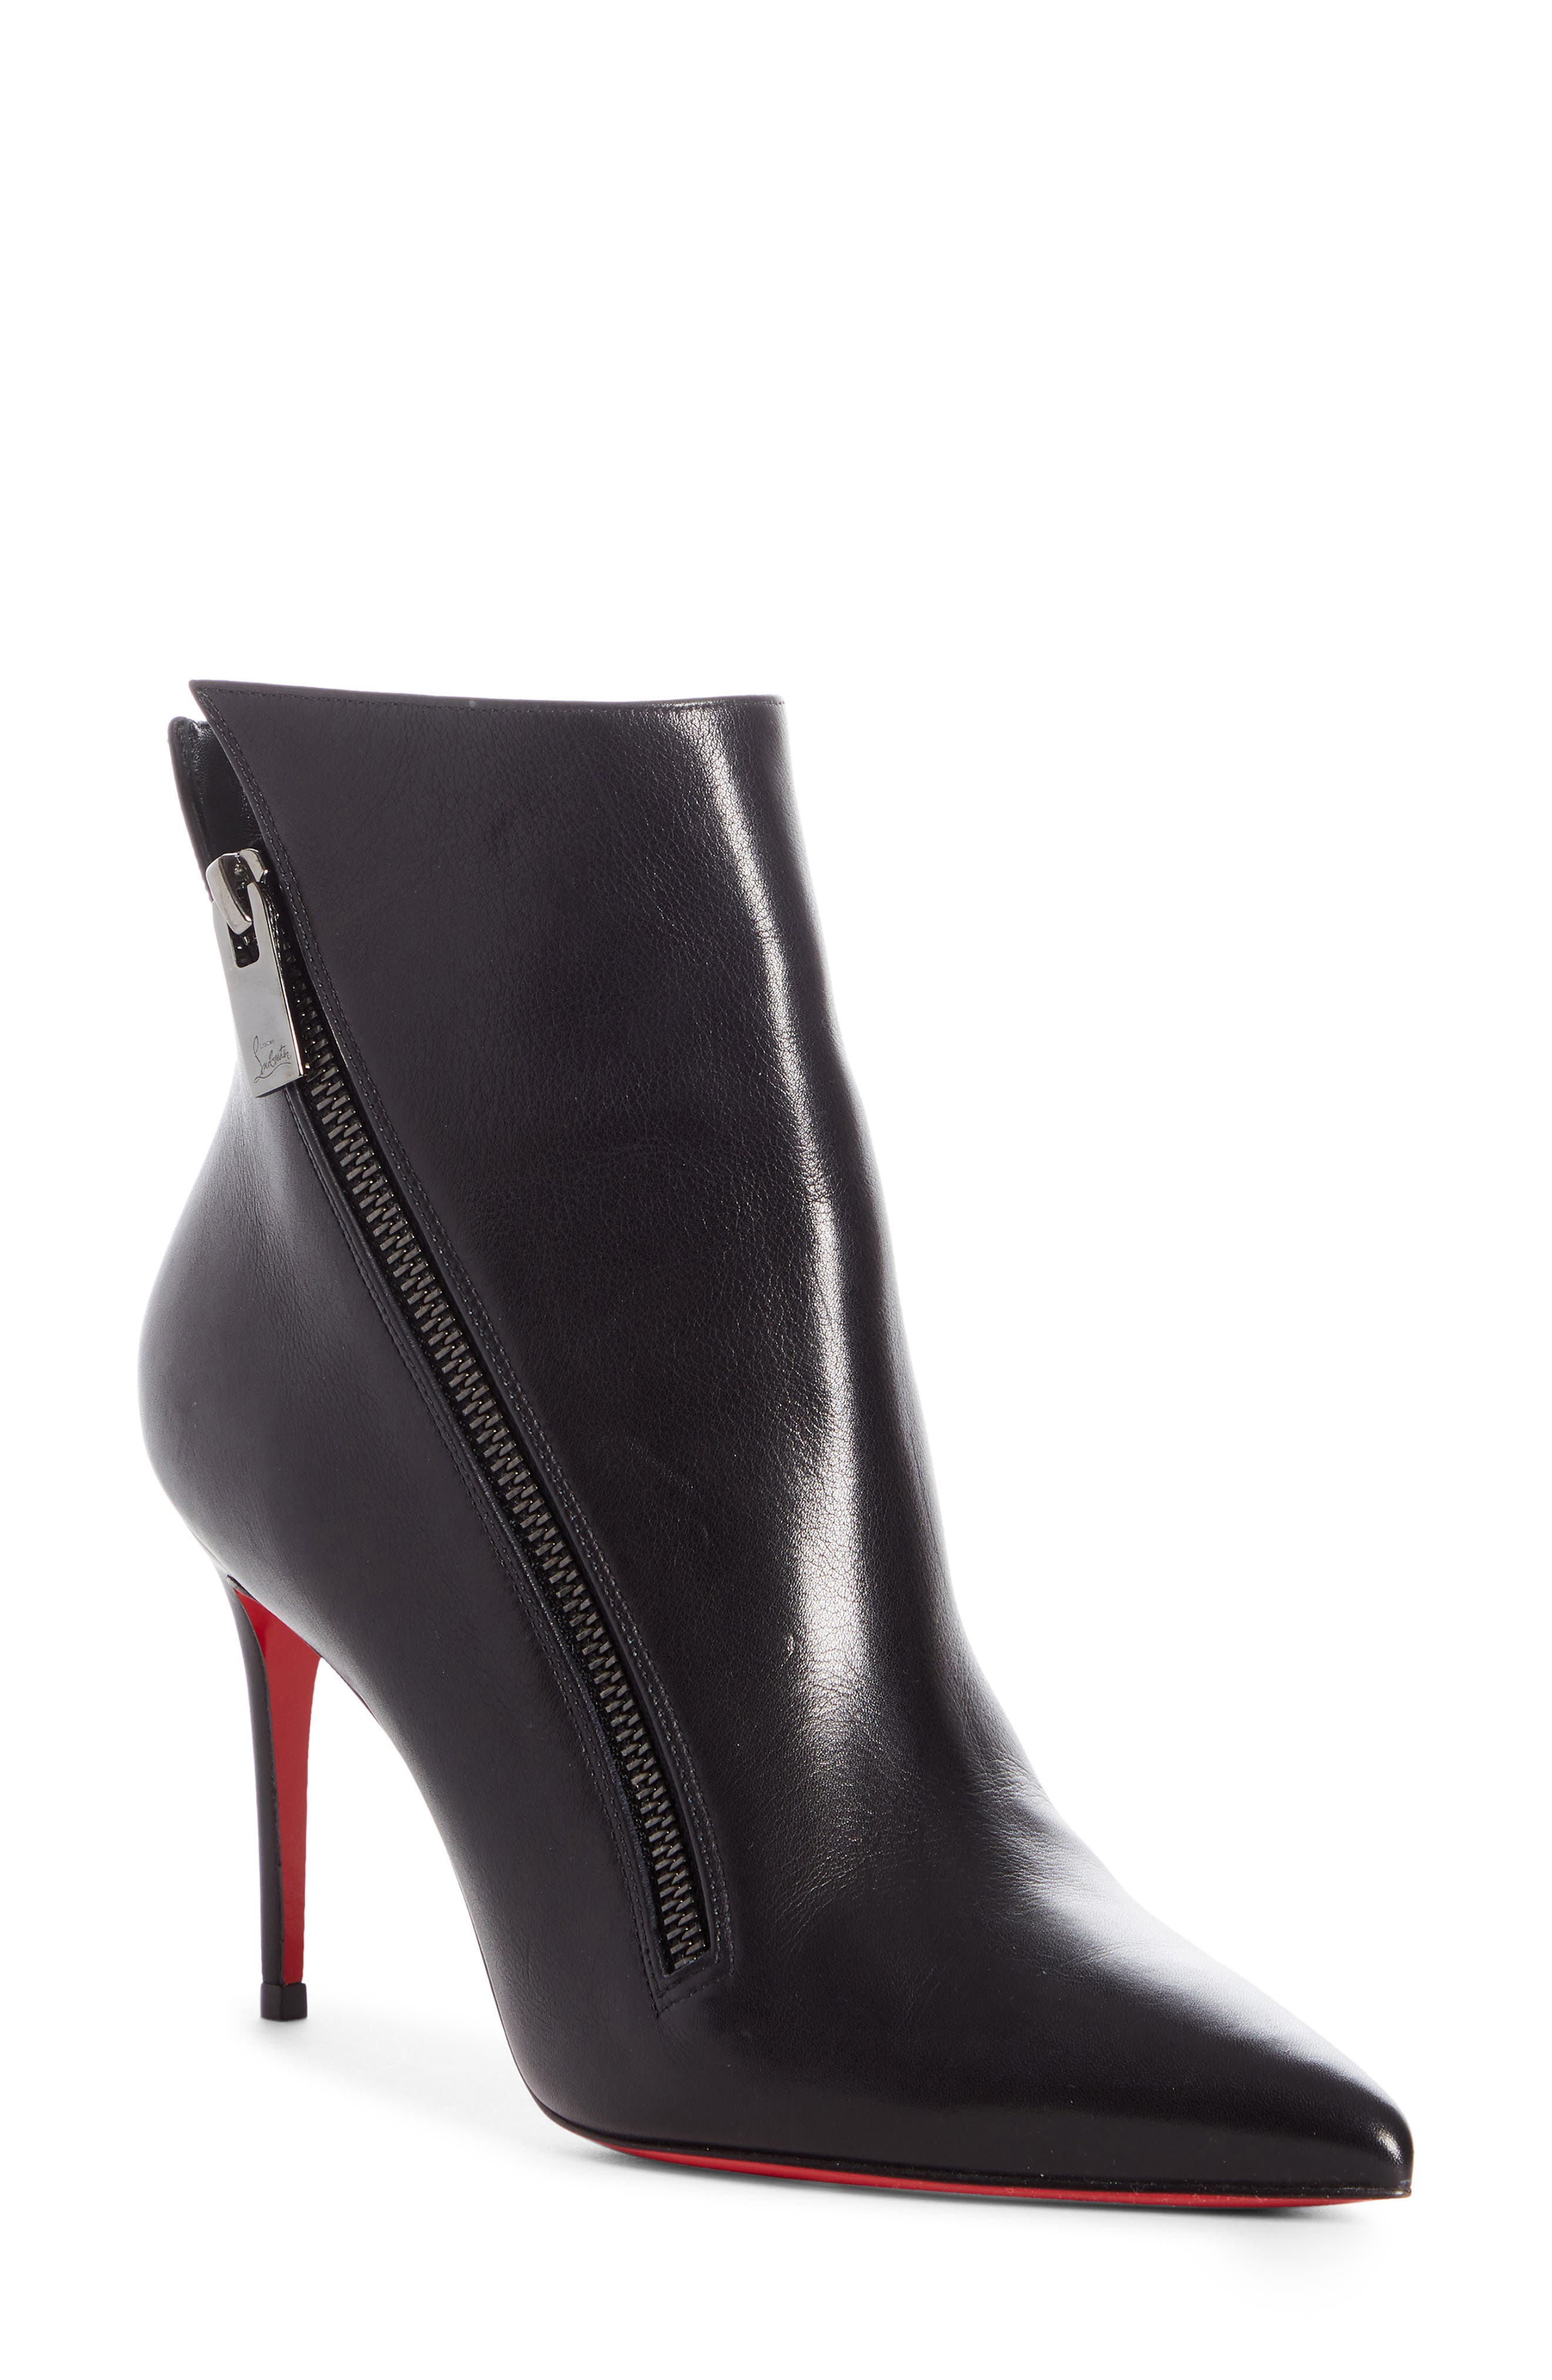 An angled zip adds a dash of edge to this pointed-toe bootie crafted from soft calfskin leather and set on a sky-high stiletto. Style Name: Christian Louboutin Birgikate Stiletto Bootie (Women). Style Number: 6006540. Available in stores.